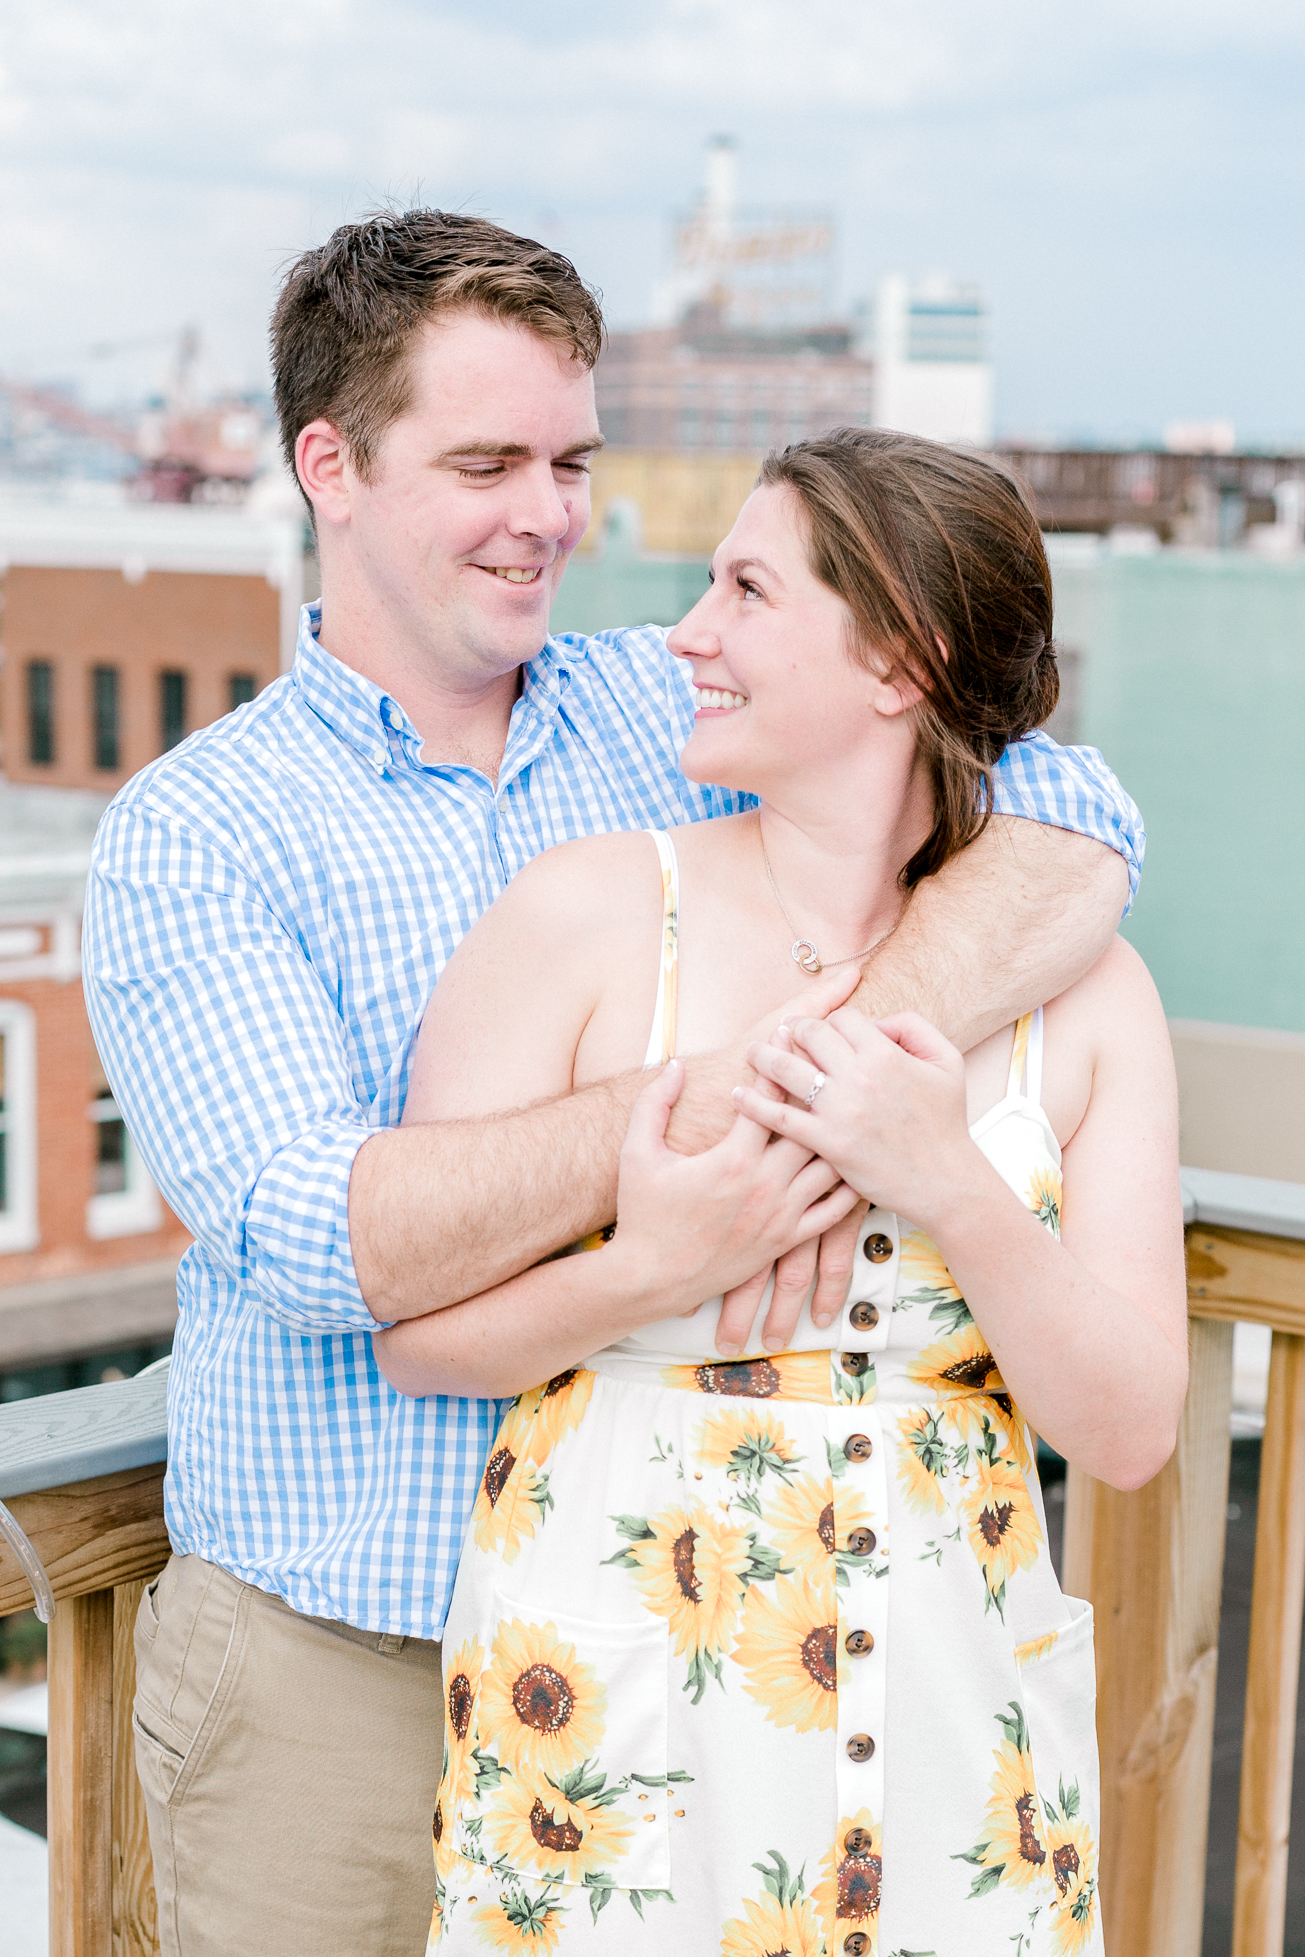 Baltimore Federal Hill Park Stormy Engagement Session Lytle Photo Co (39 of 92).jpg